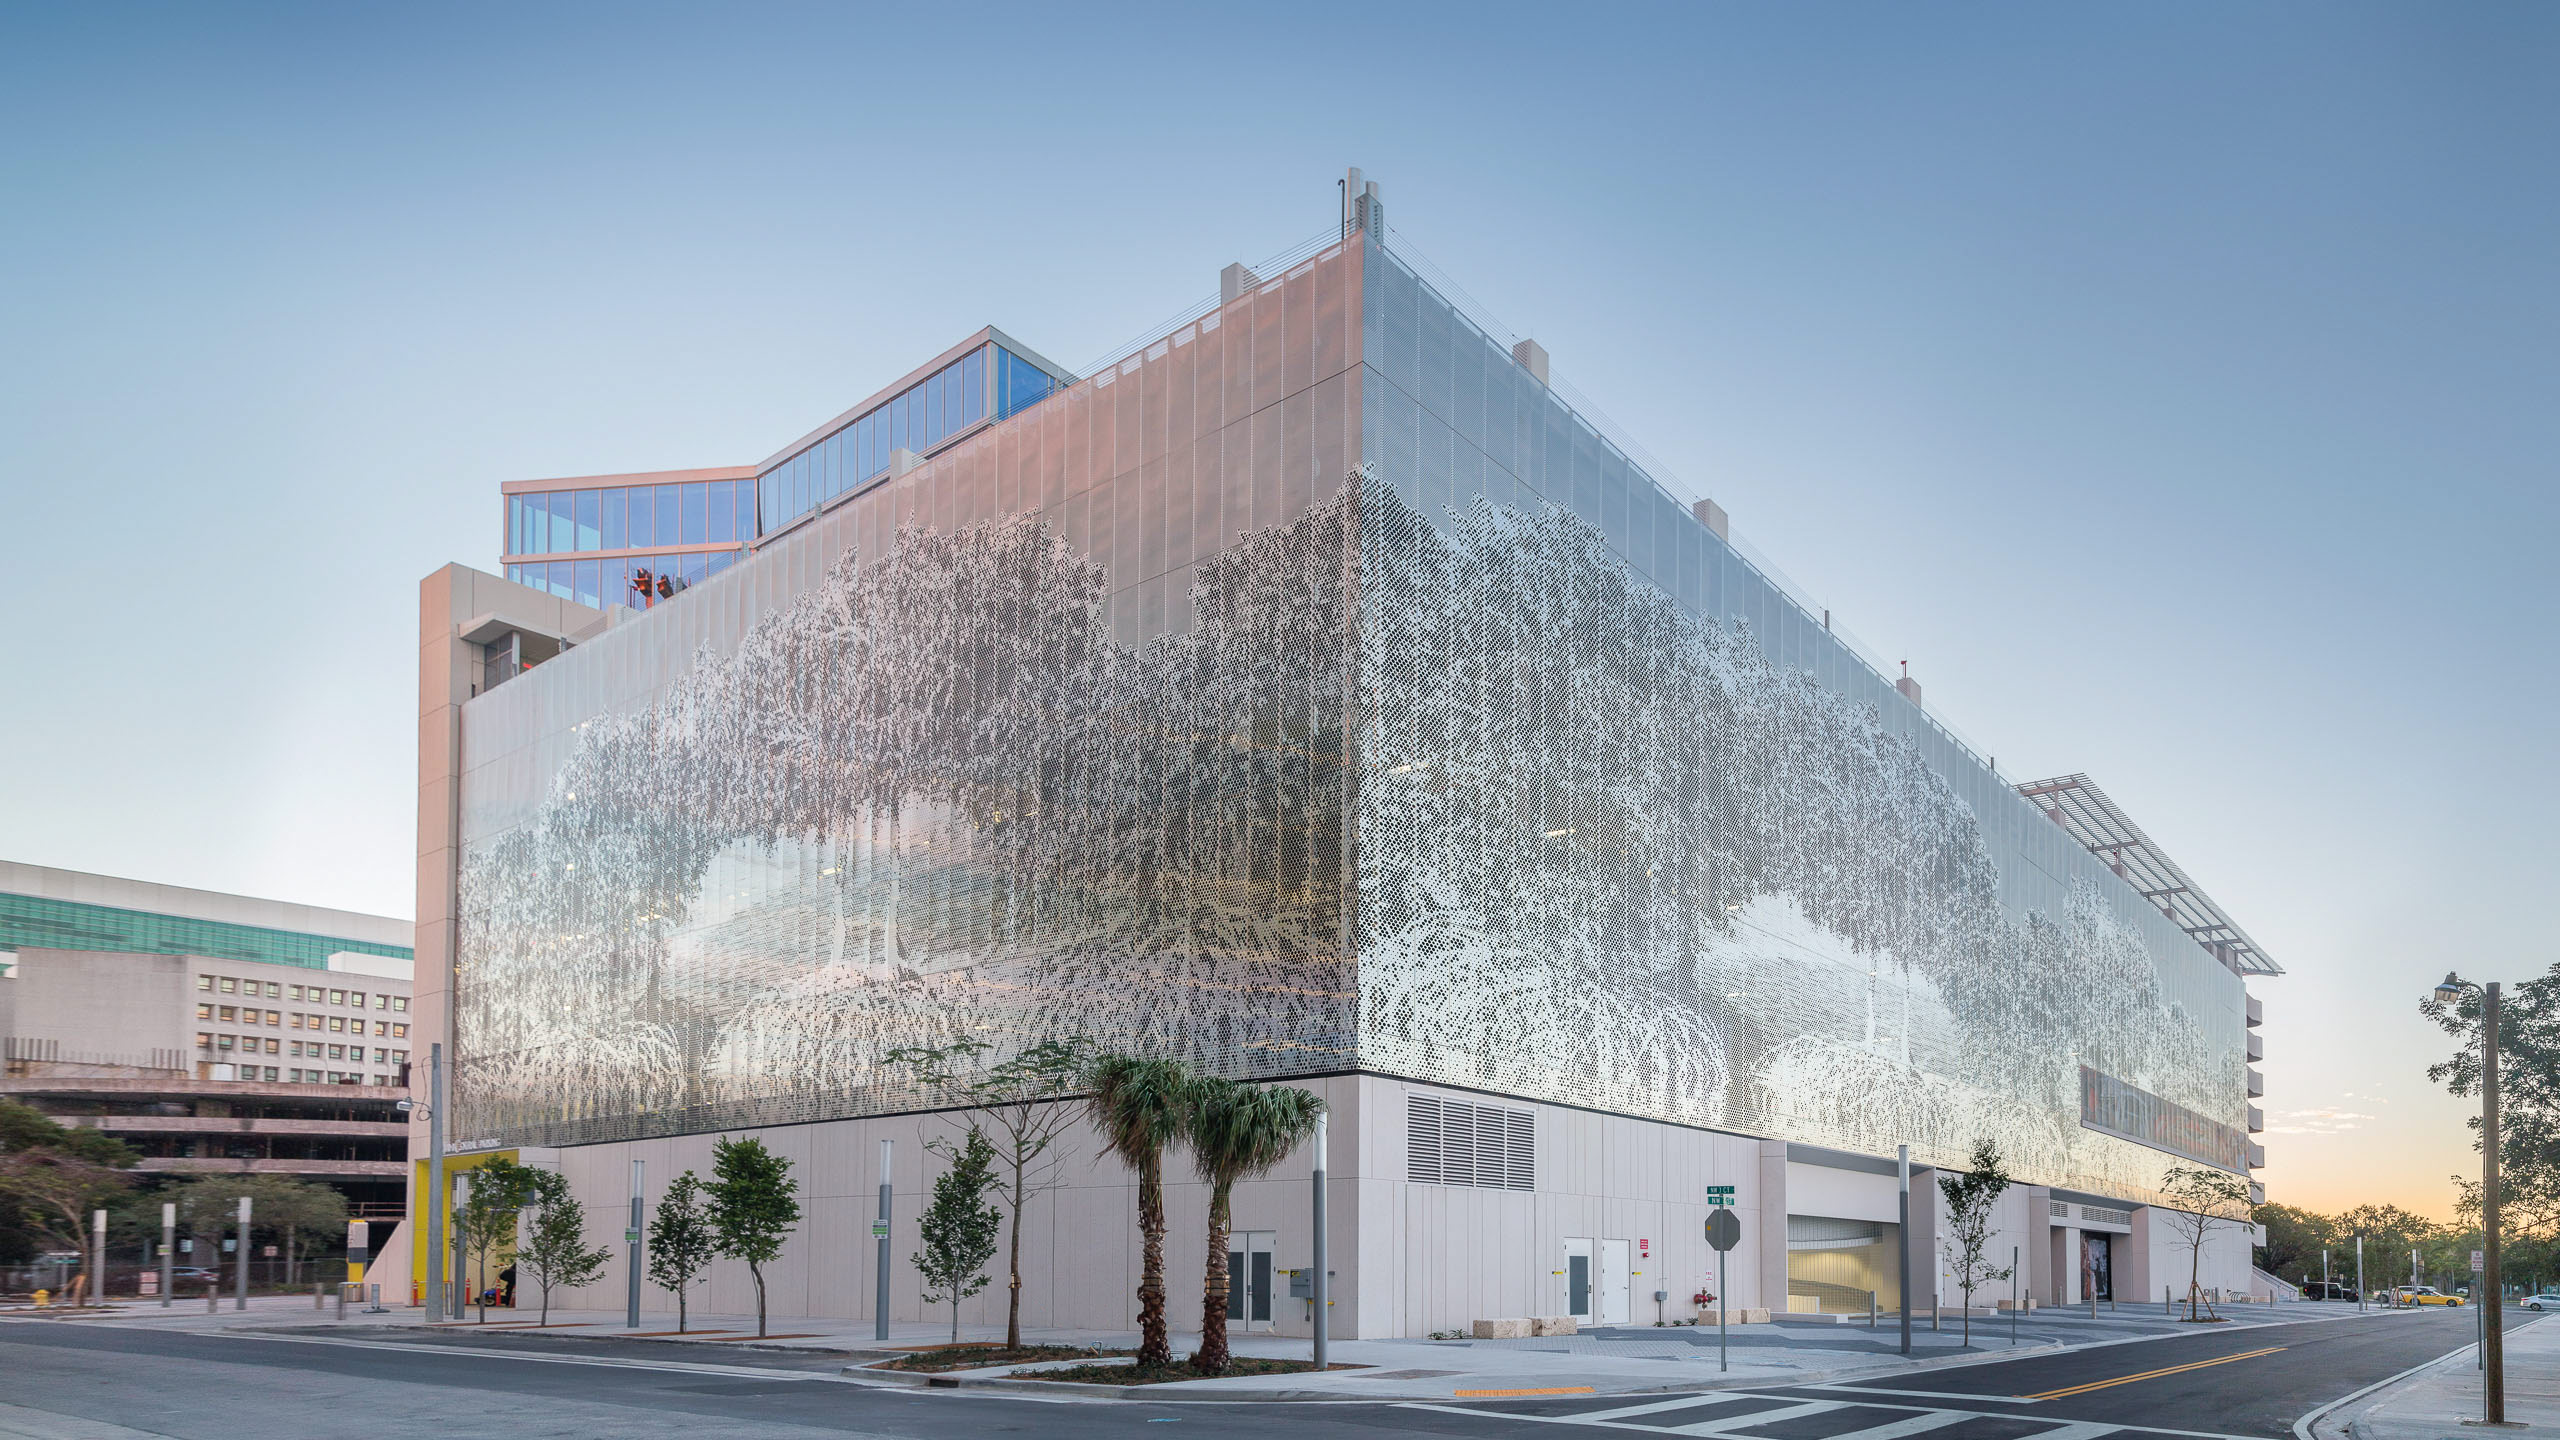 Parking Garage Facade example with the Poma-supplied systems for 3 MiamiCentral